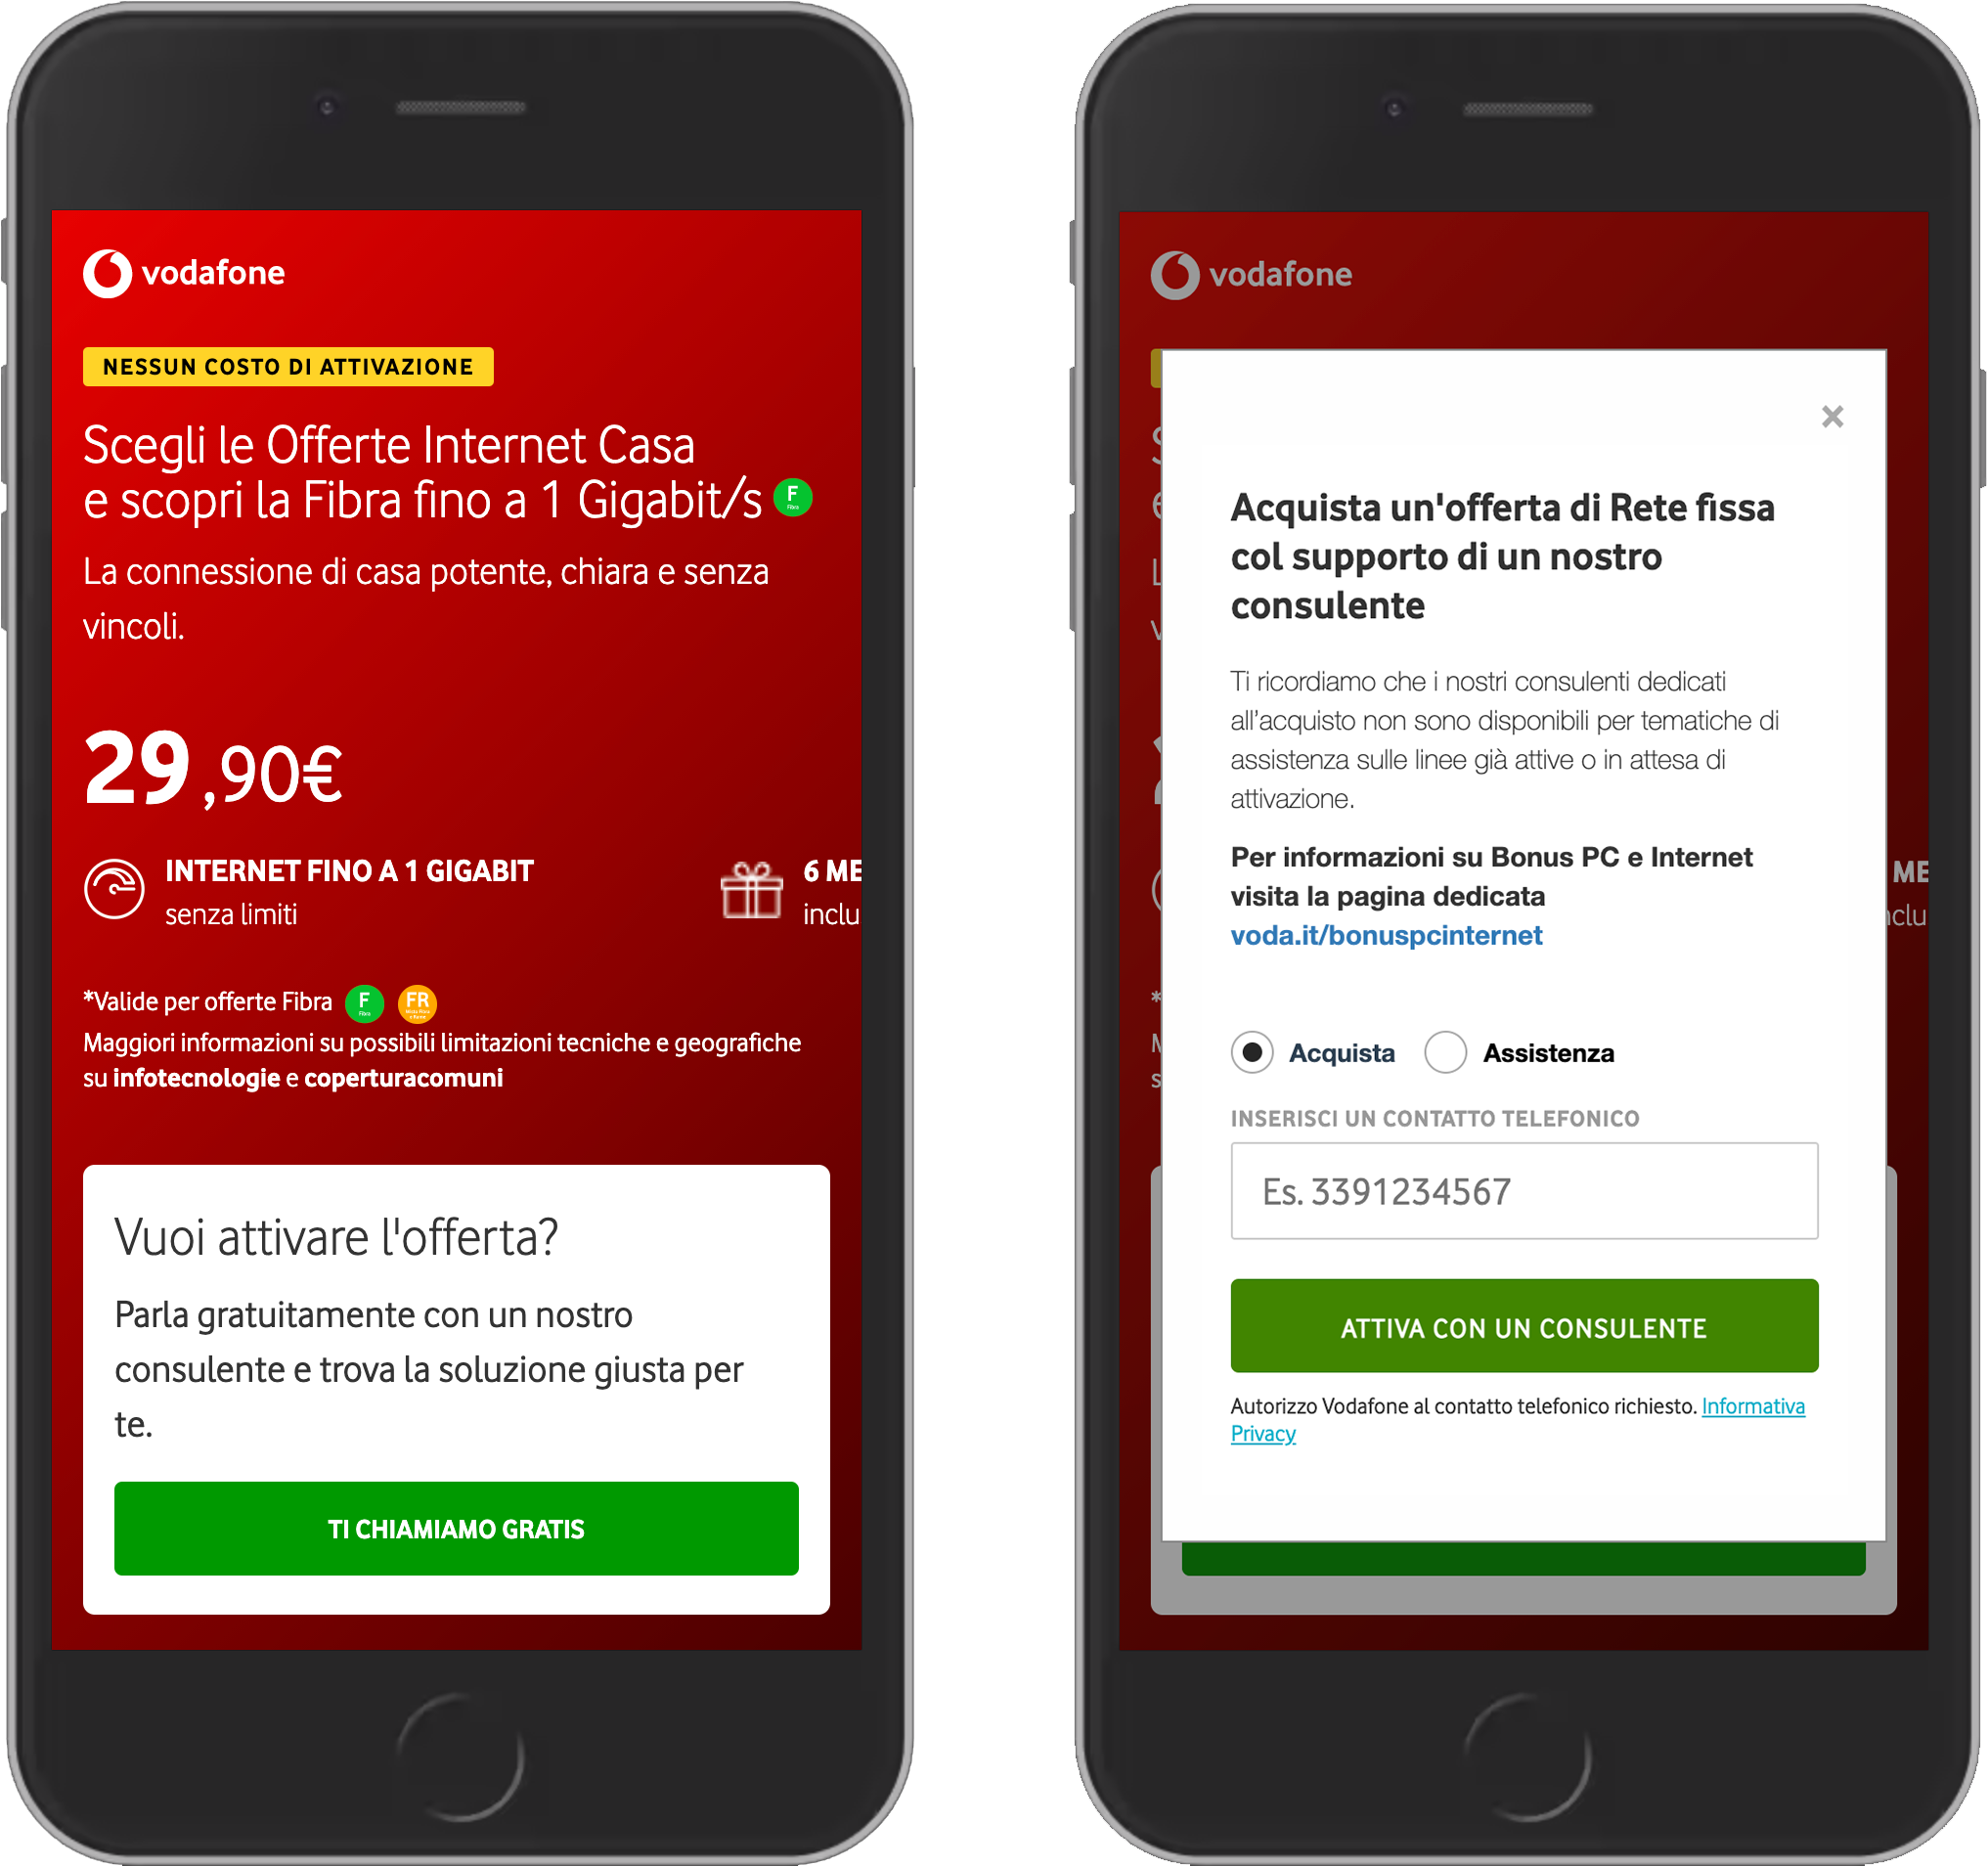 Two screenshots of the Vodafone website.